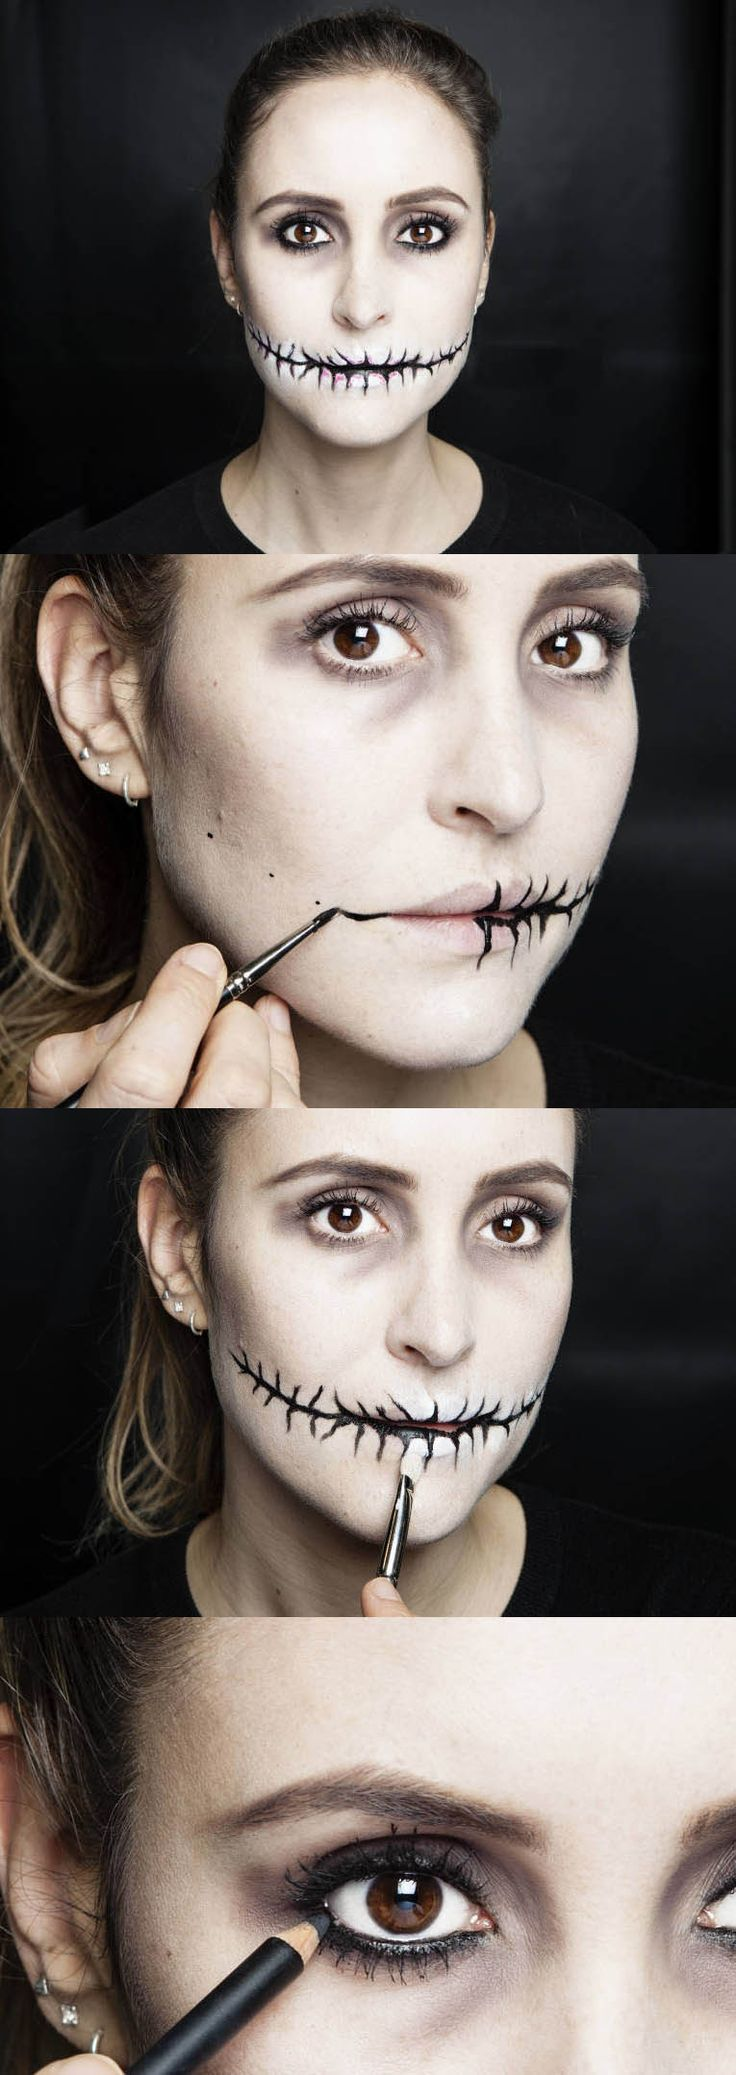 Best online makeup tutorials gallery any tutorial examples best ideas for makeup tutorials in this step by step makeup description baditri gallery baditri Images